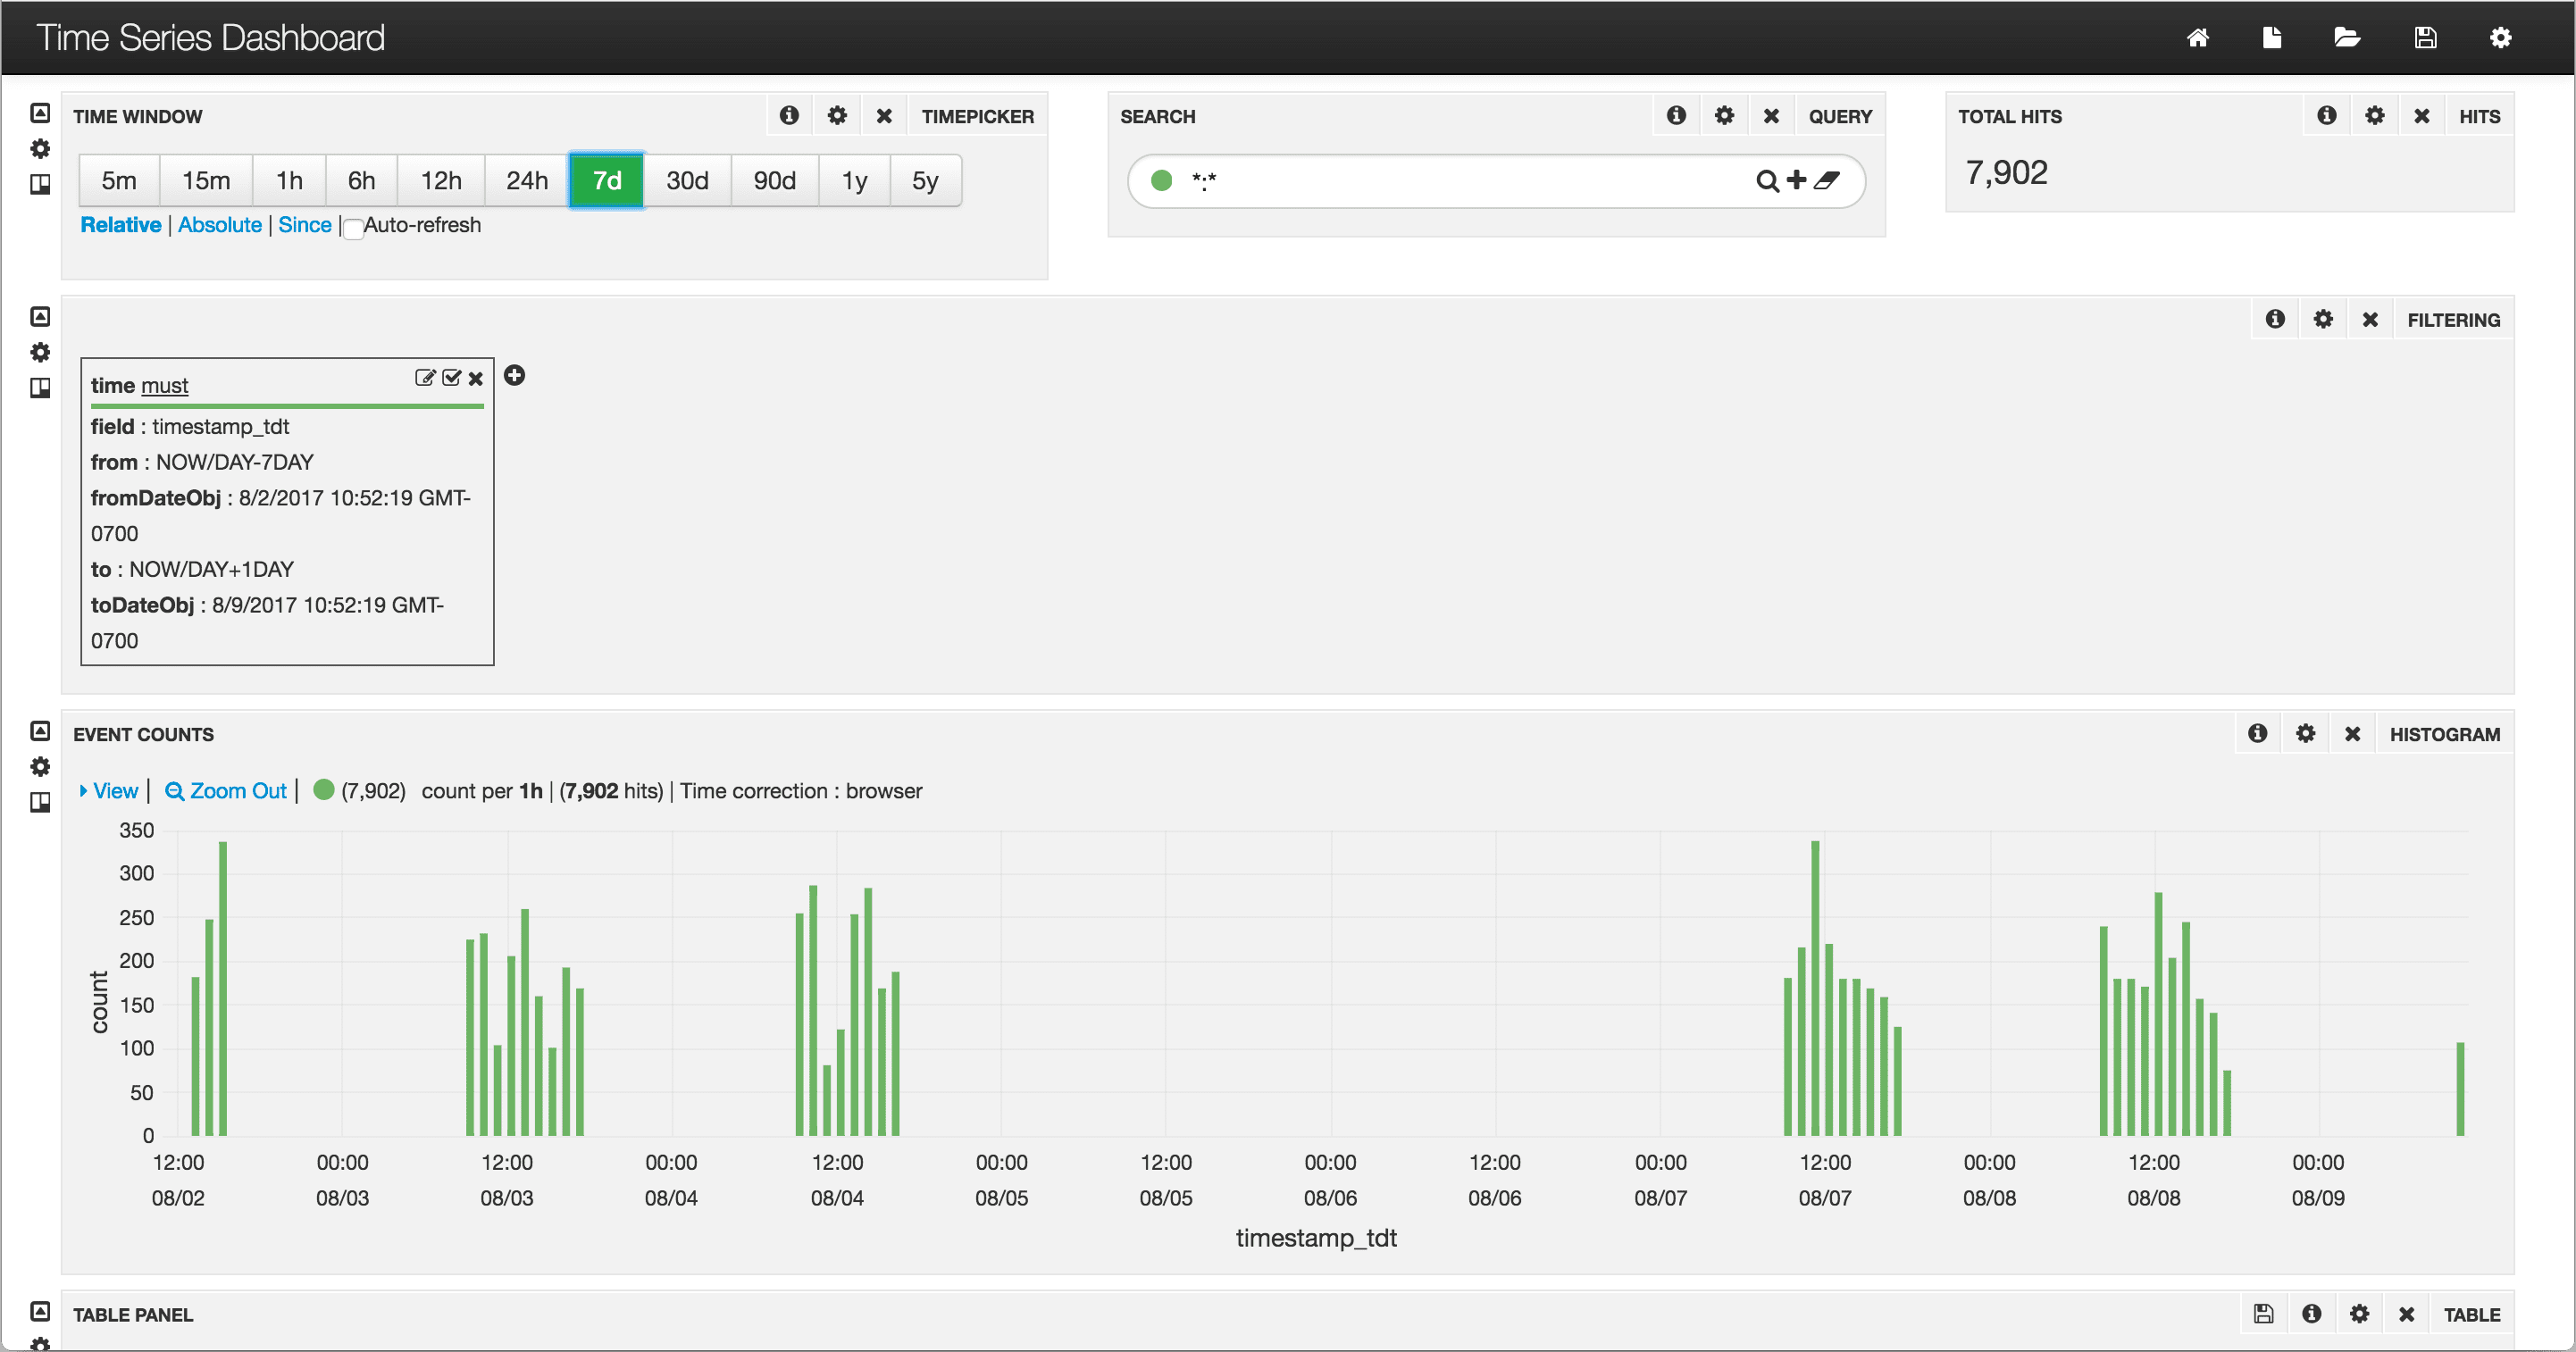 Time-series dashboard